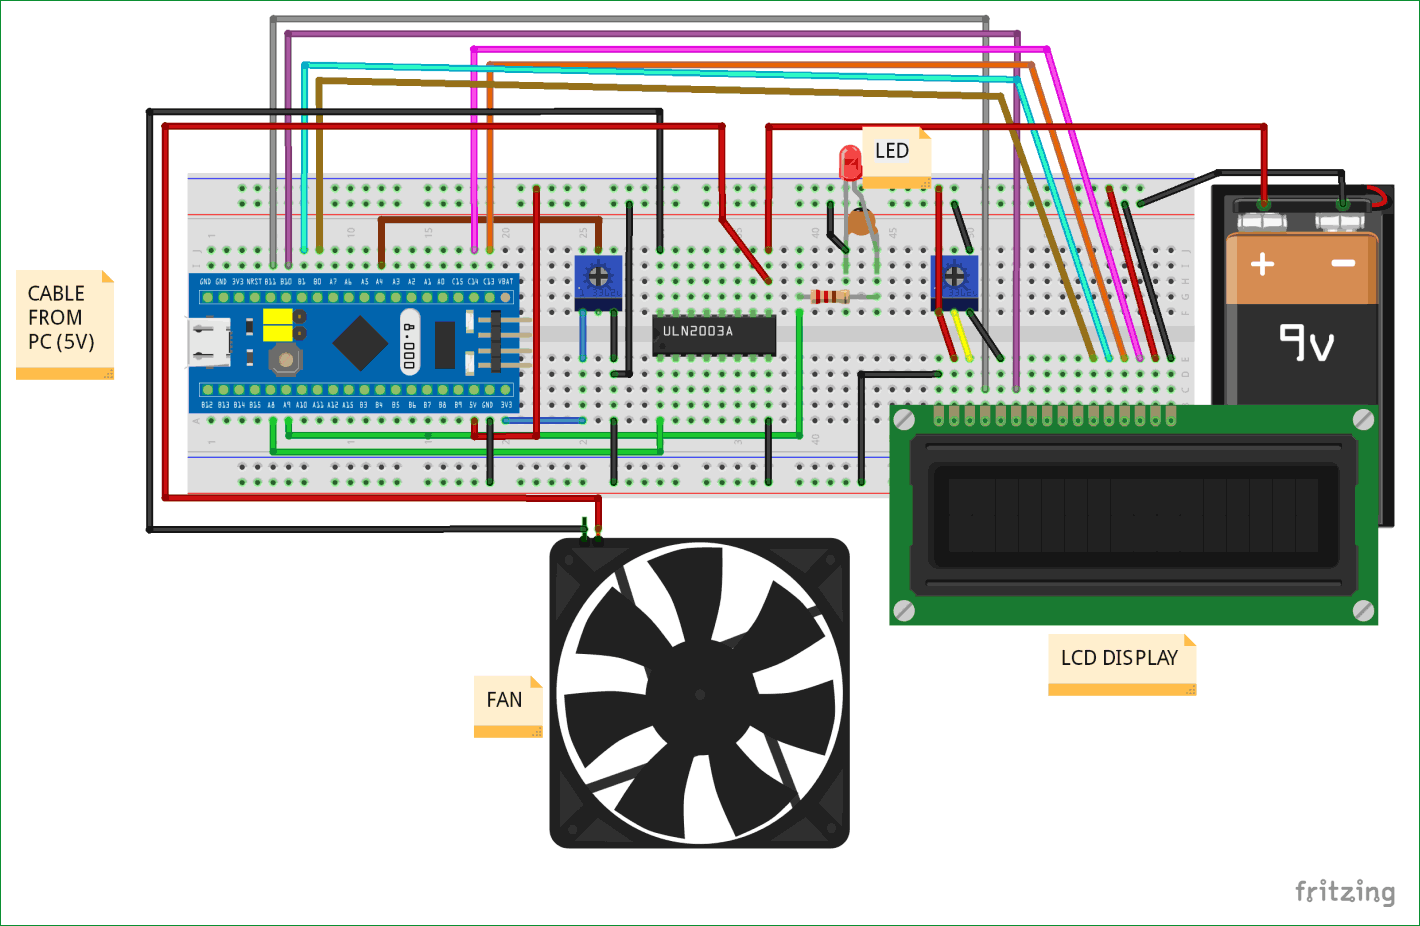 hight resolution of circuit diagram for pulse width modulation with stm32f103c8